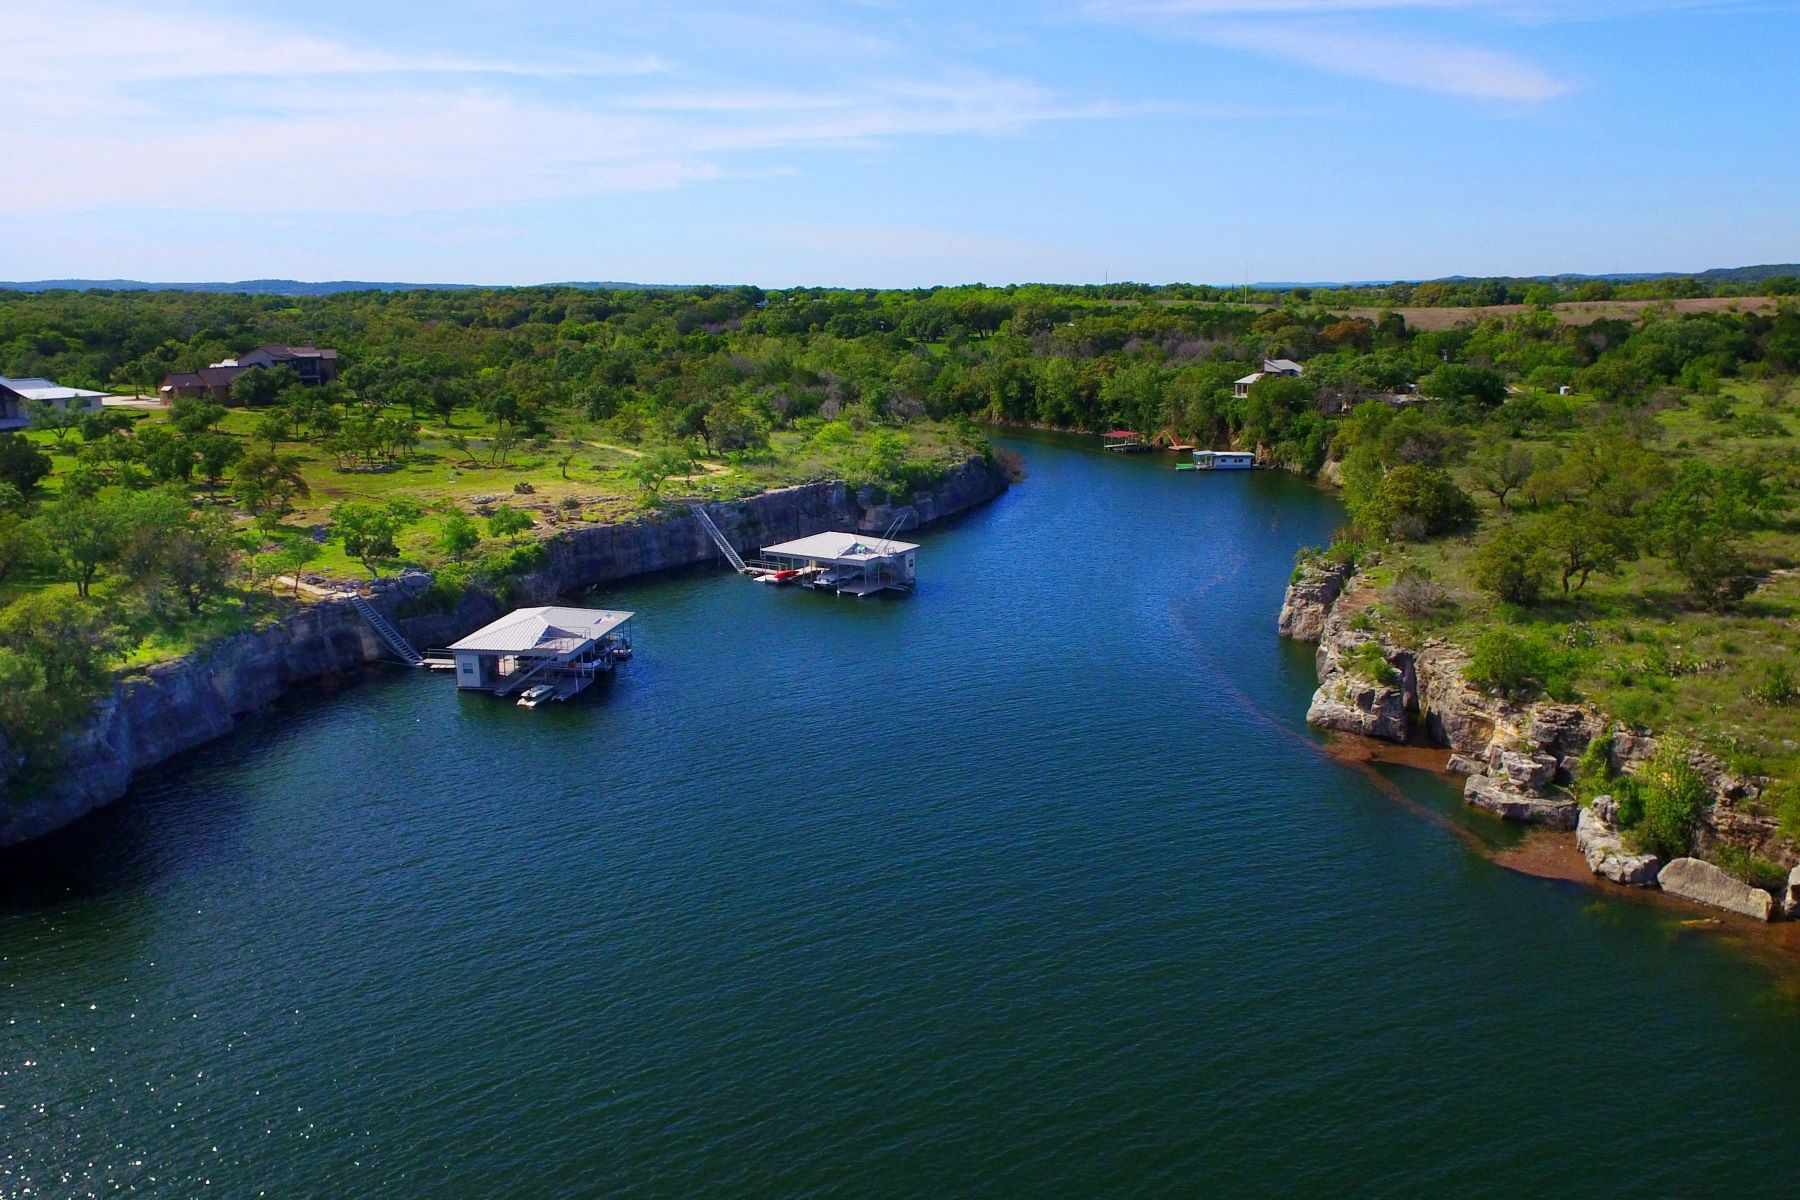 Terreno para Venda às Beautiful Lot in a Tranquil Community 22709 Mary Nell Ln Spicewood, Texas, 78669 Estados Unidos